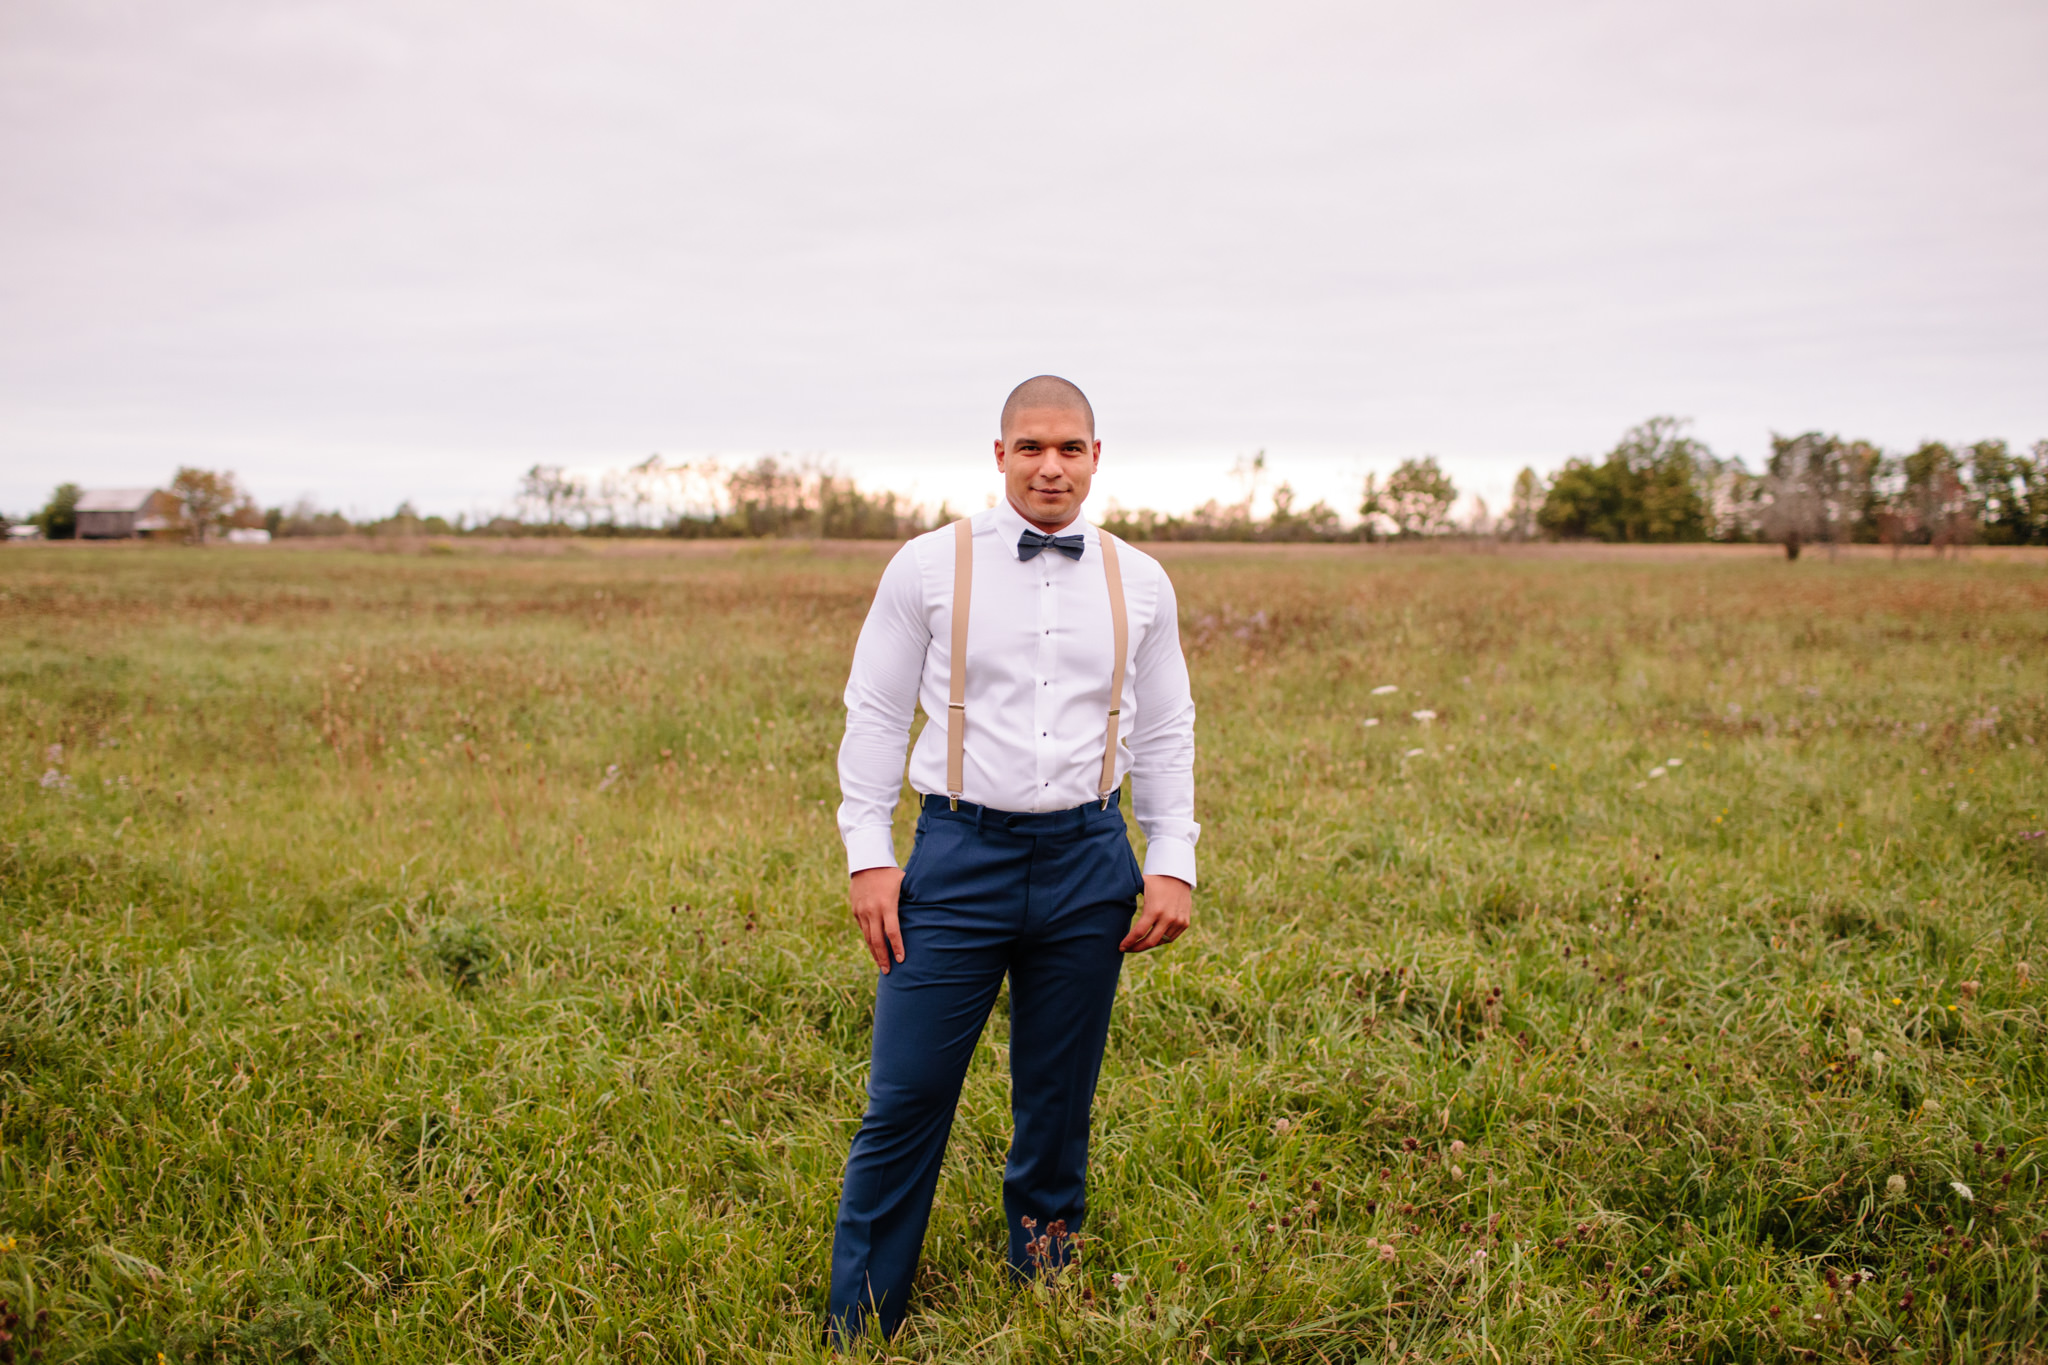 groom in navy pants and suspenders standing in a field for wedding portrait